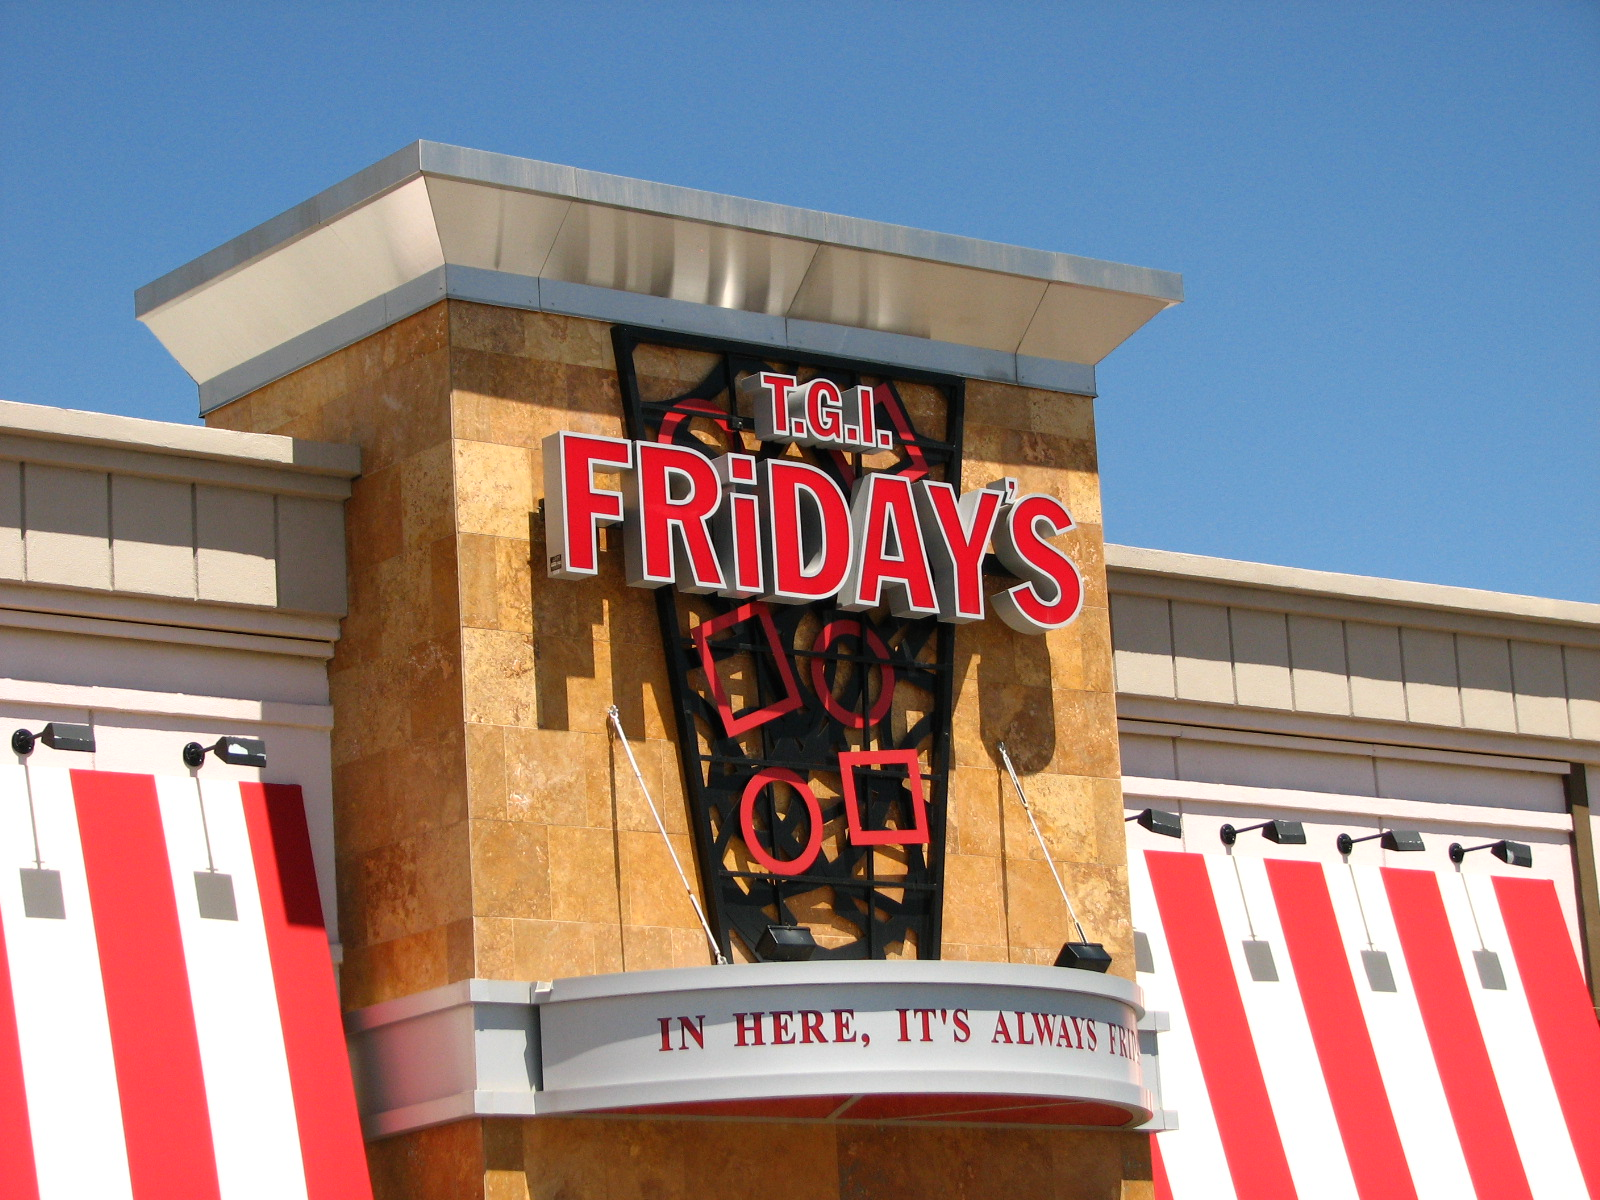 TGI Fridays Customer Satisfaction Survey. If you have recently visited TGI Fridays, your feedback is wanted! Here's what you need to do to complete the TGI Fridays Survey (located at goodfilezbv.cf) and redeem the offer printed on your receipt.